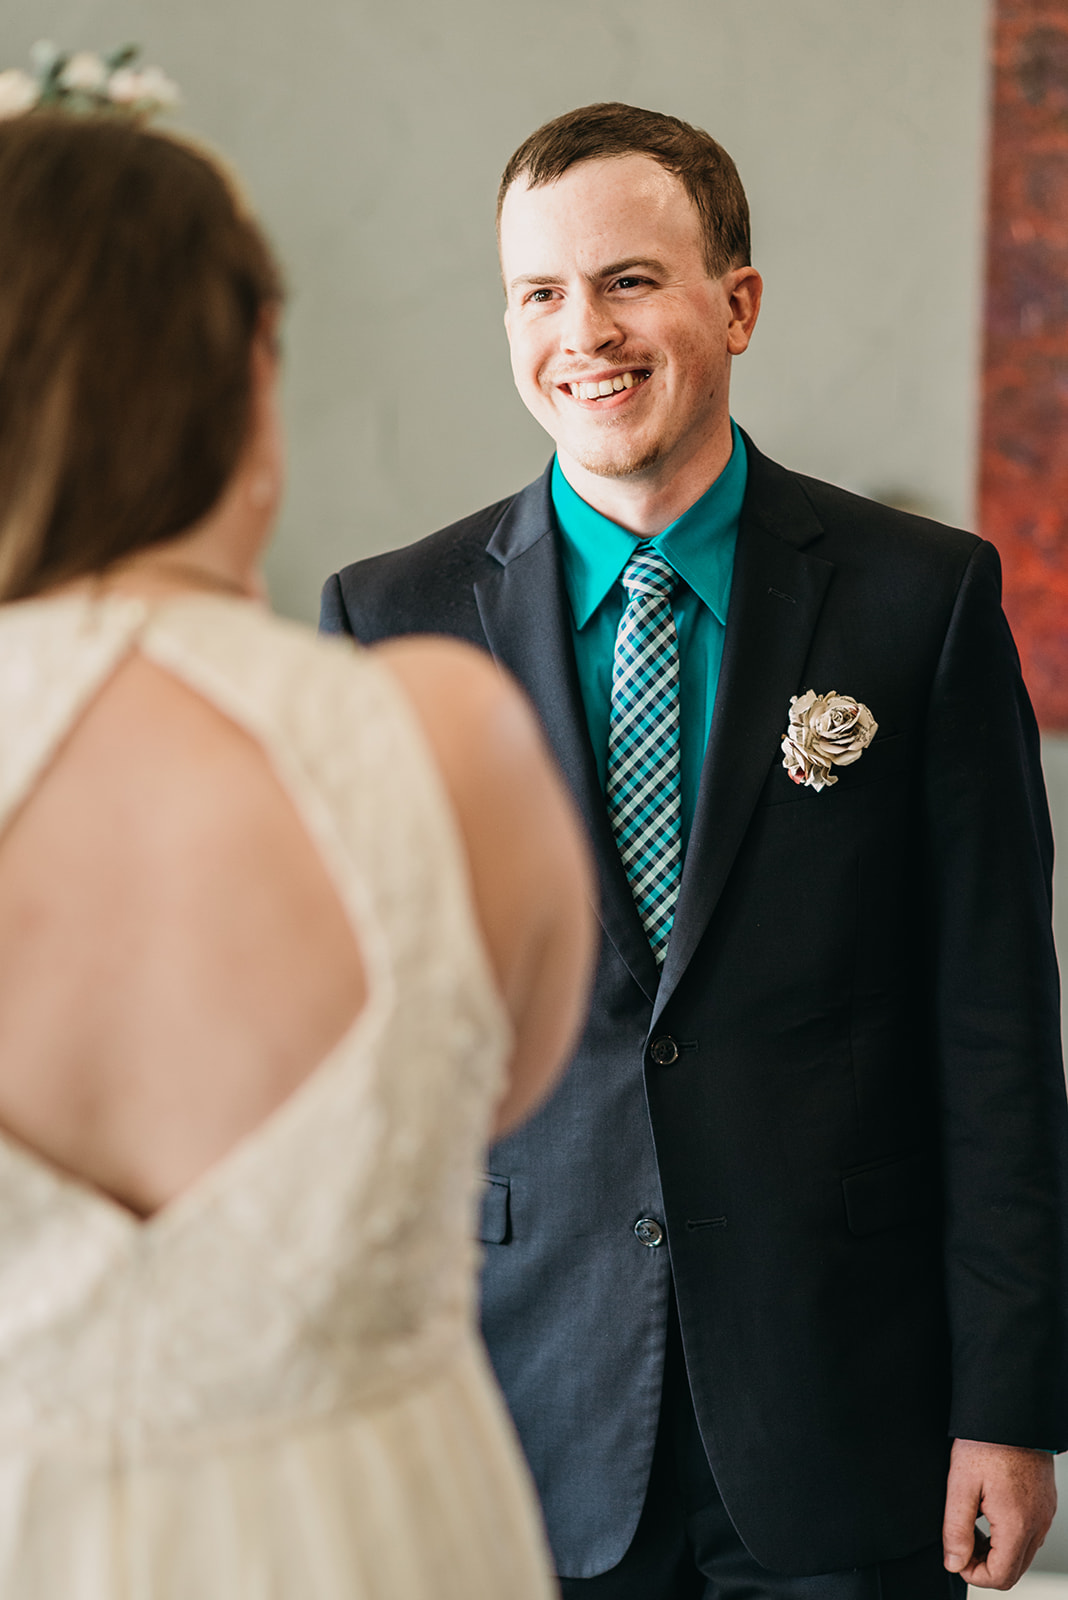 [image description: I'm wearing my wedding dress and have my back to the camera. My partner (white, male, average size and build) is wearing a navy blue suit, turquoise dress shirt, and checkered tie. He has a boutonnière made of book pages and is smiling at me.]